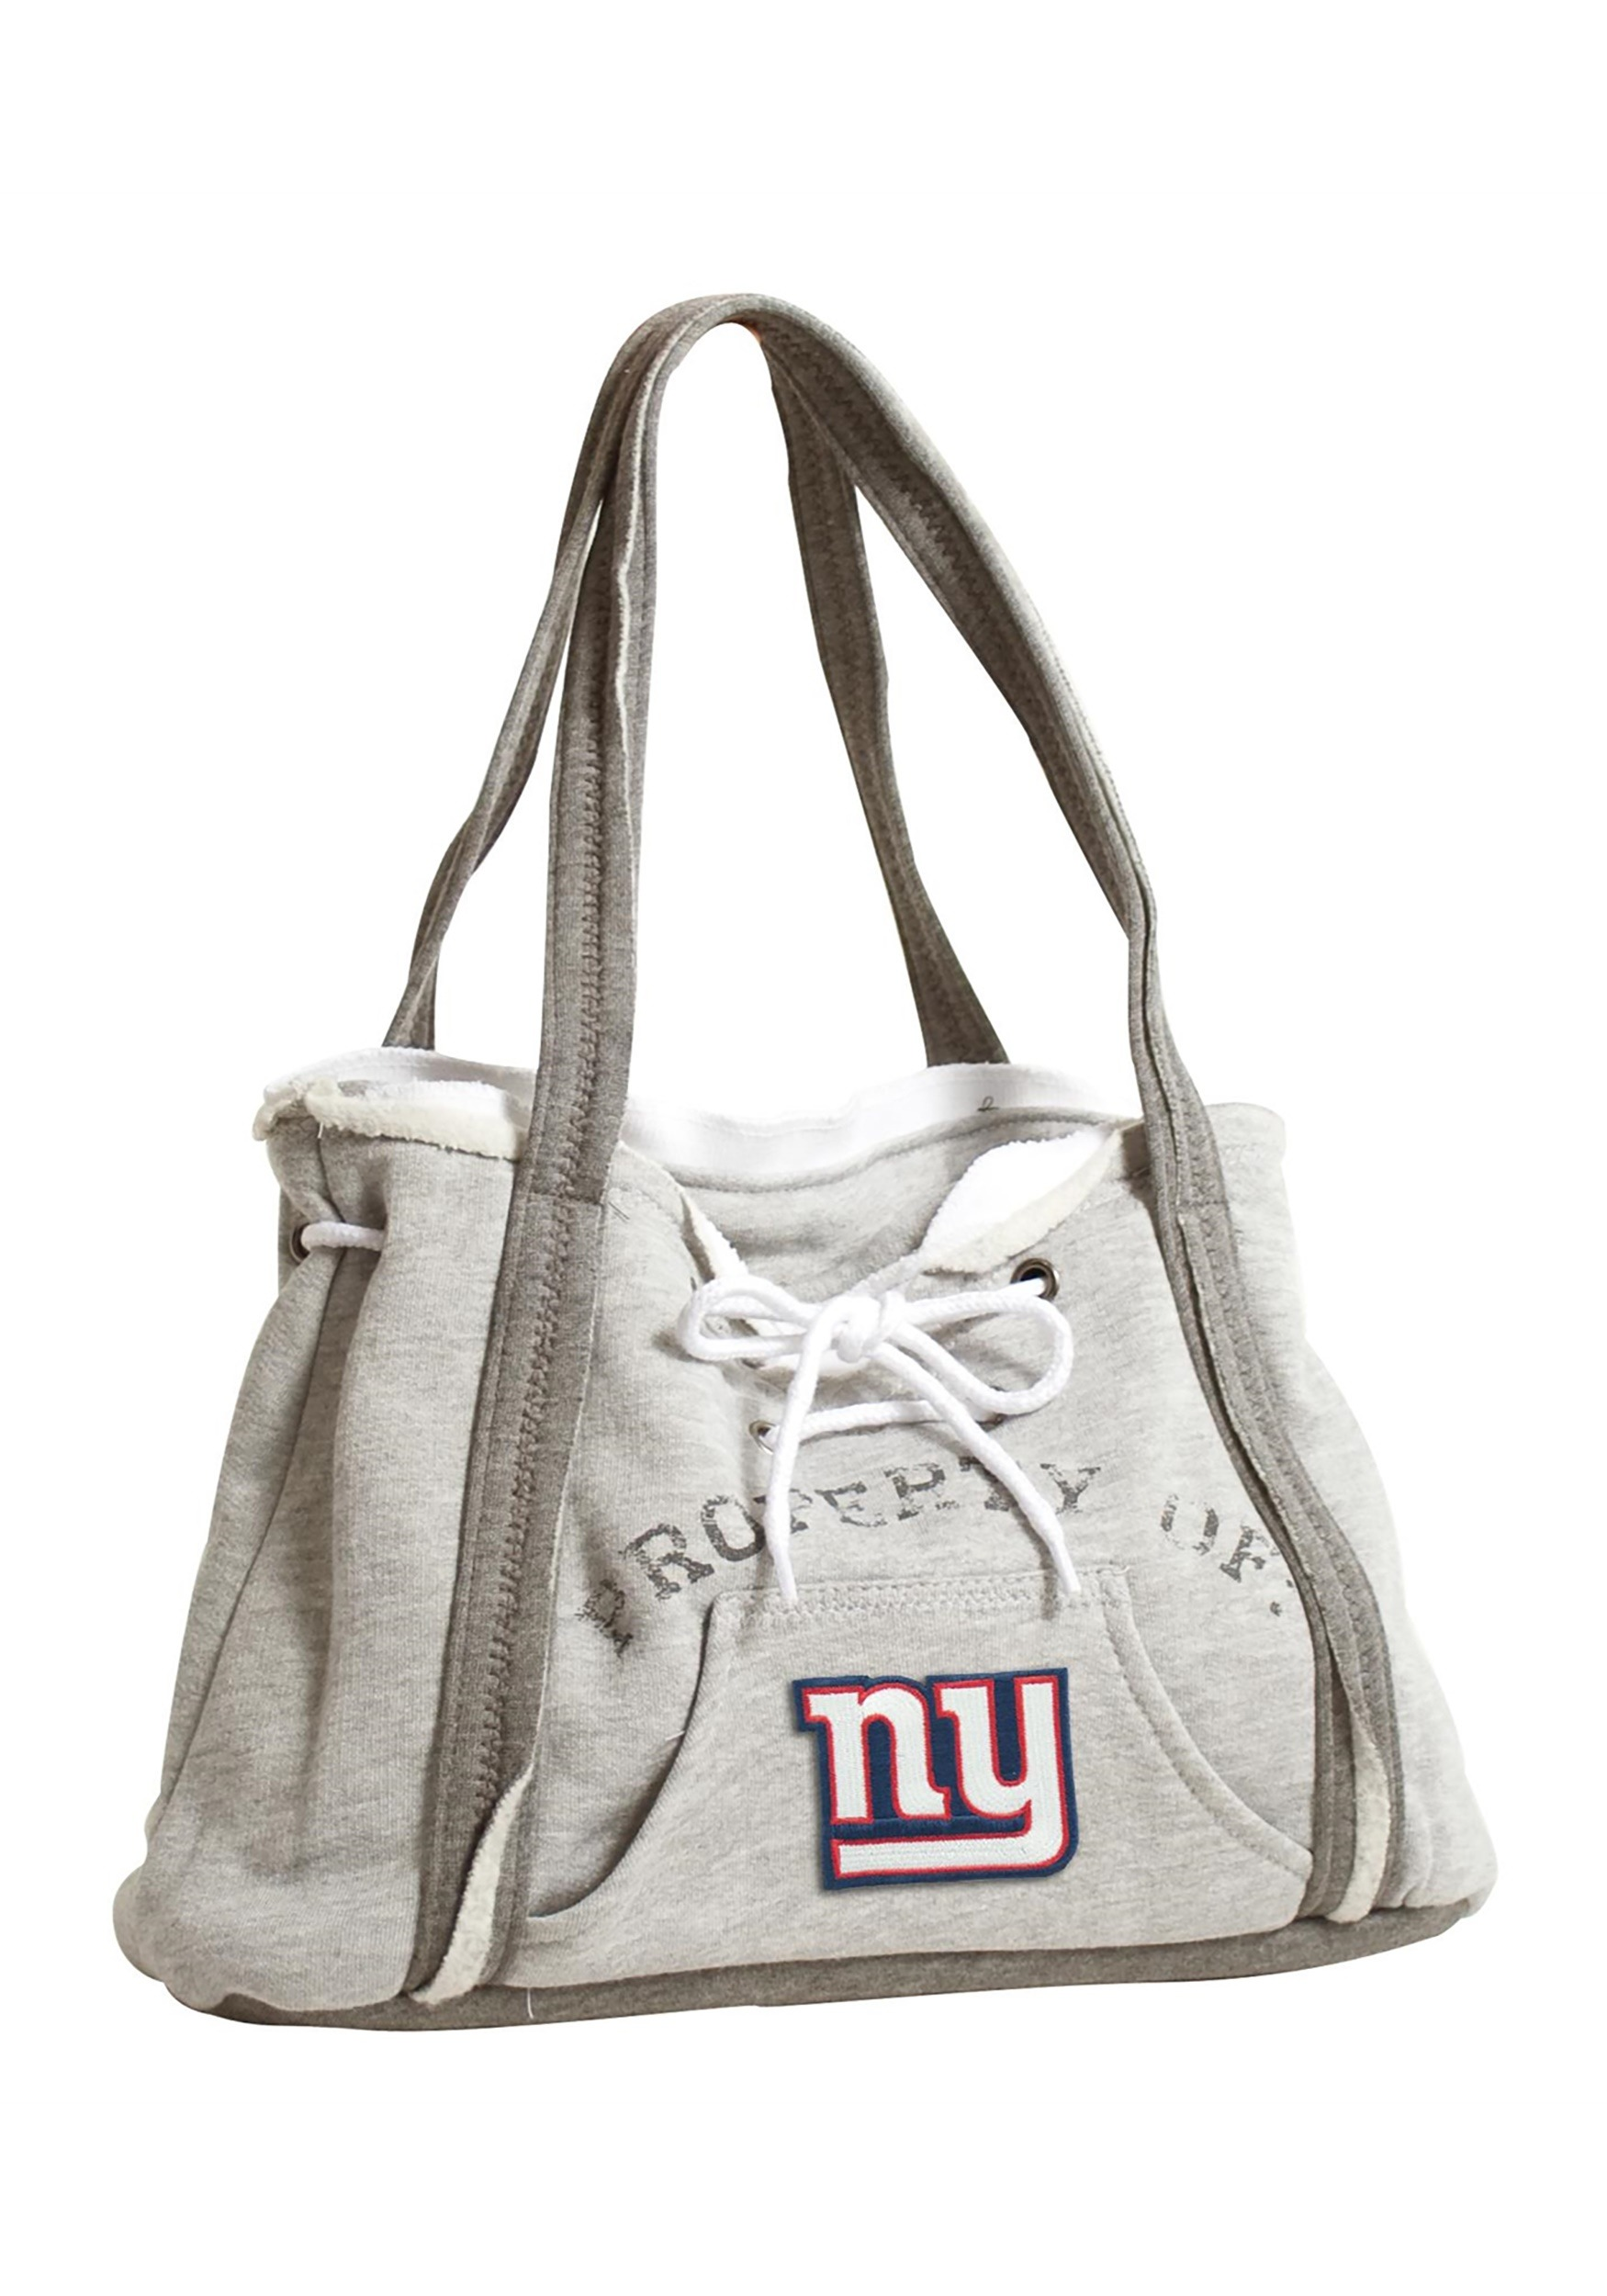 NFL Hoodie Purse featuring the New York Giants (LTE350404-GIAN-GREY) photo